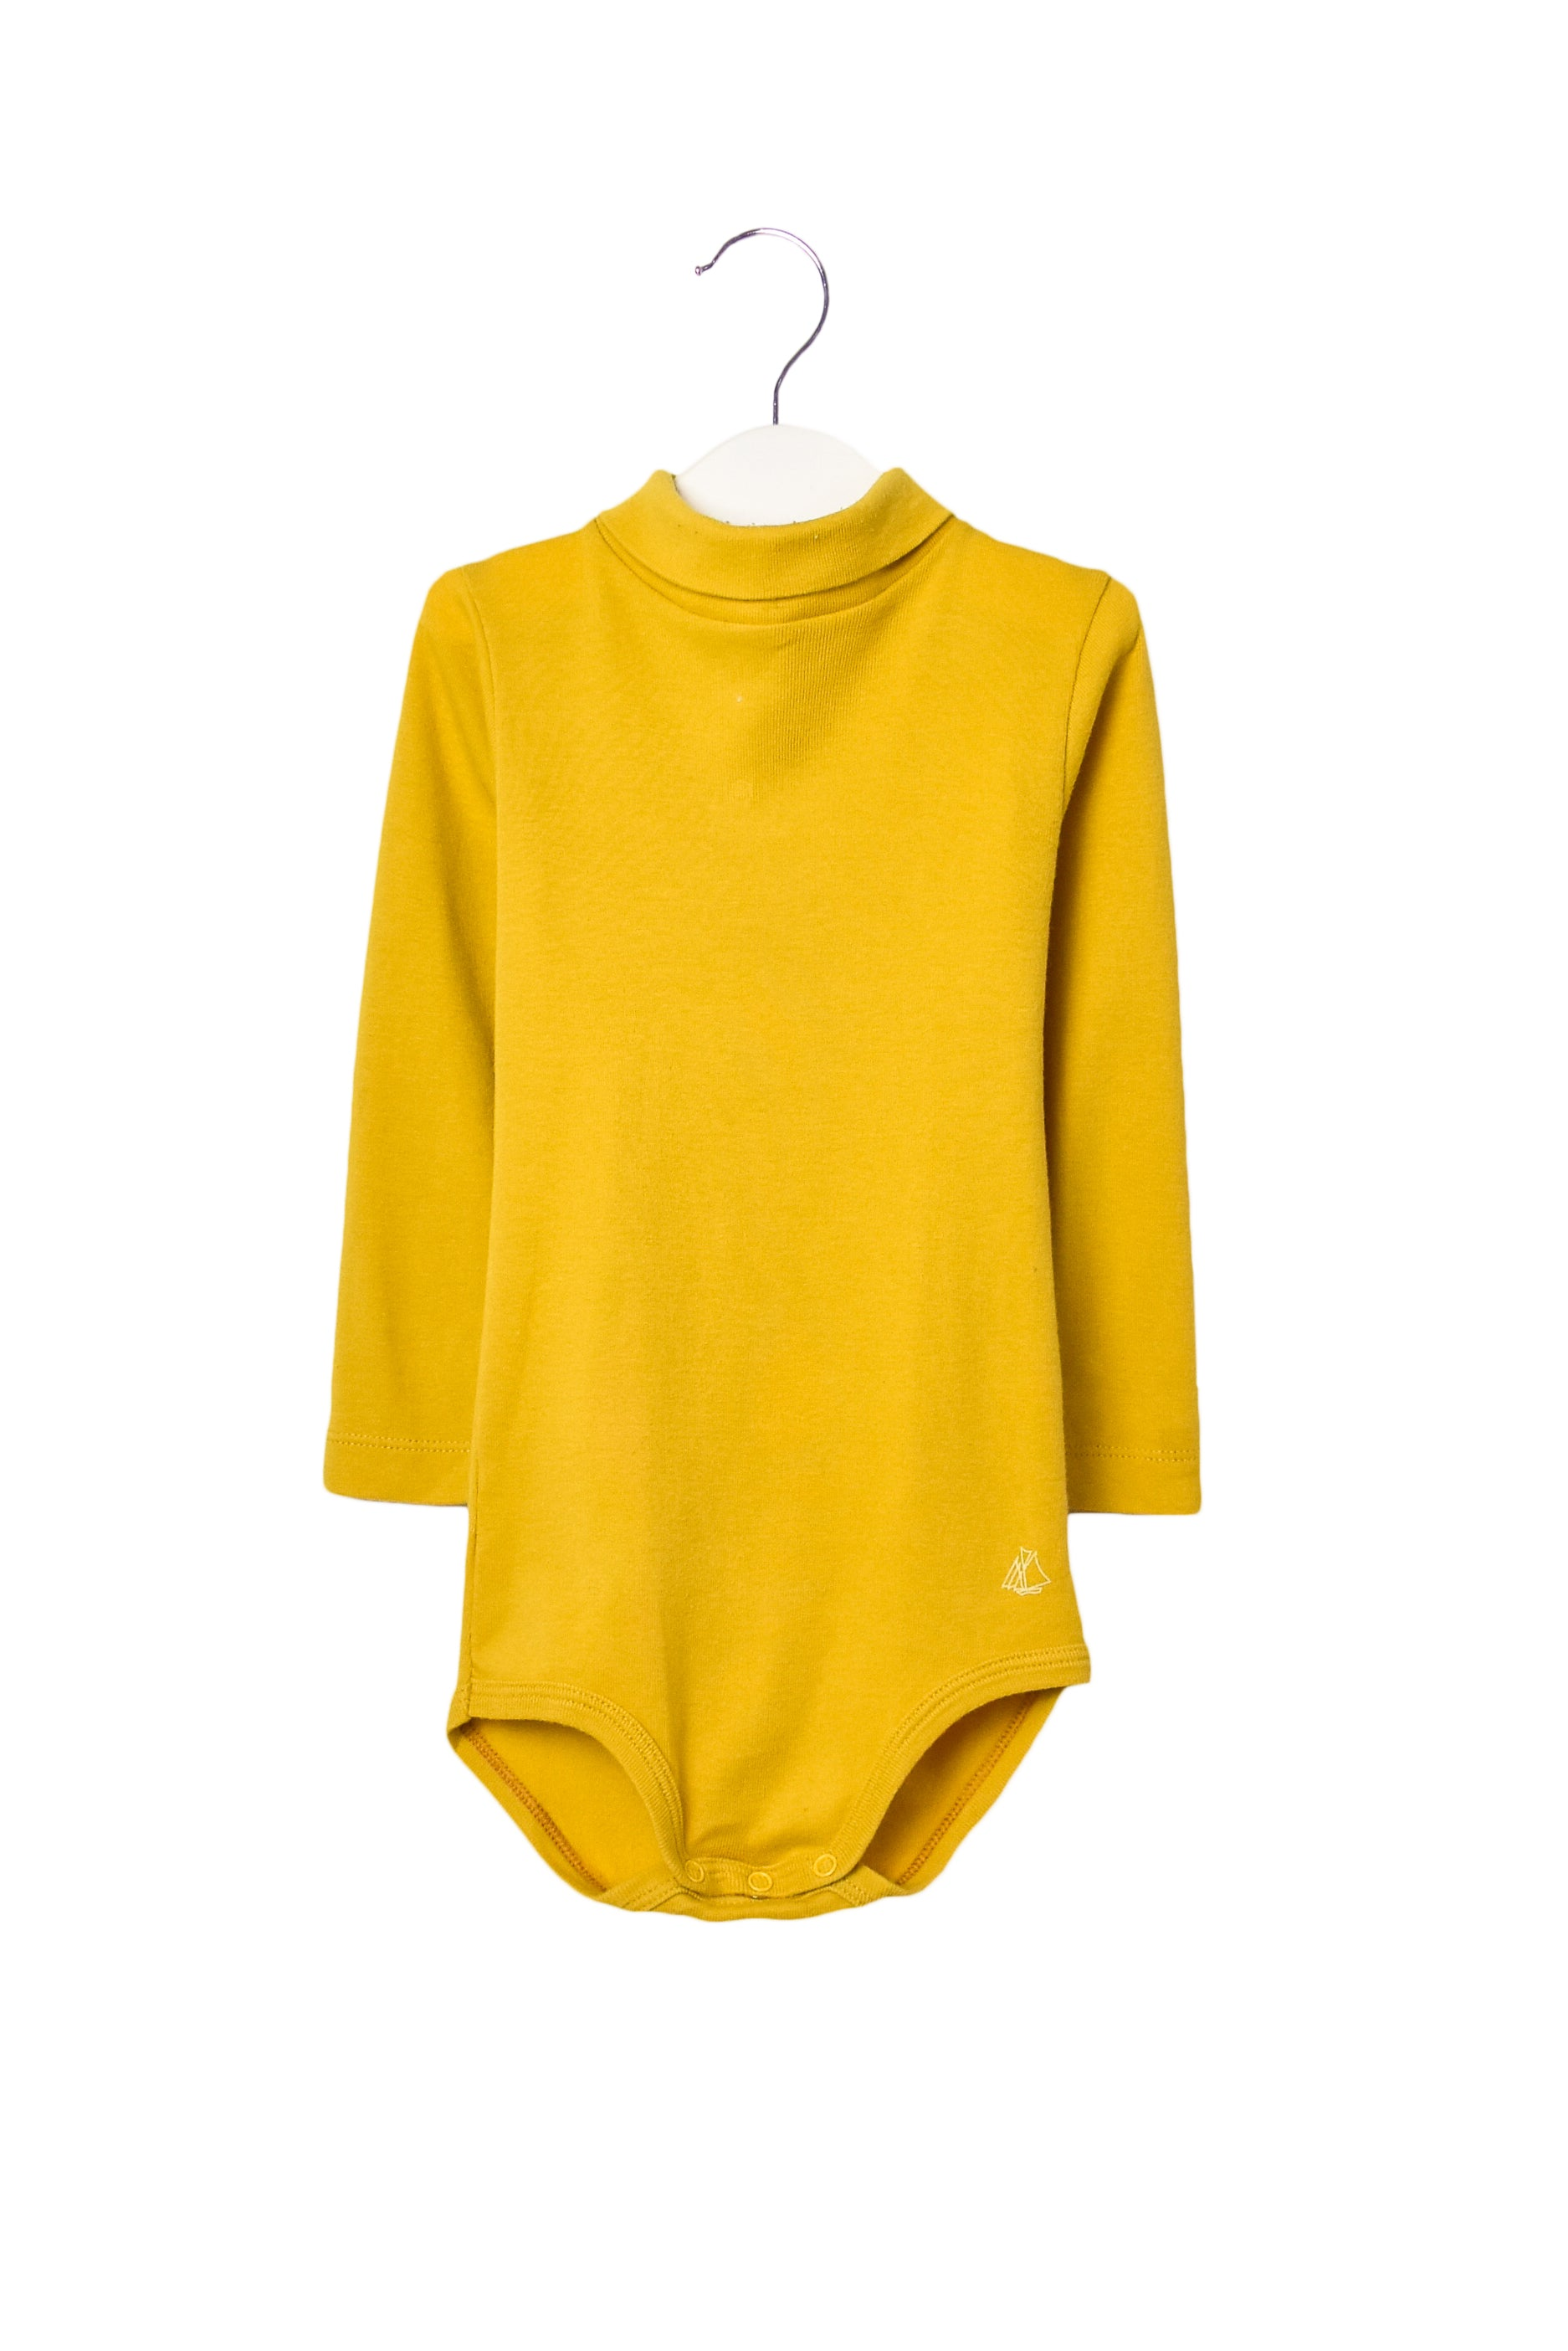 10006610 Petit Bateau Kids~Bodysuit 24M at Retykle